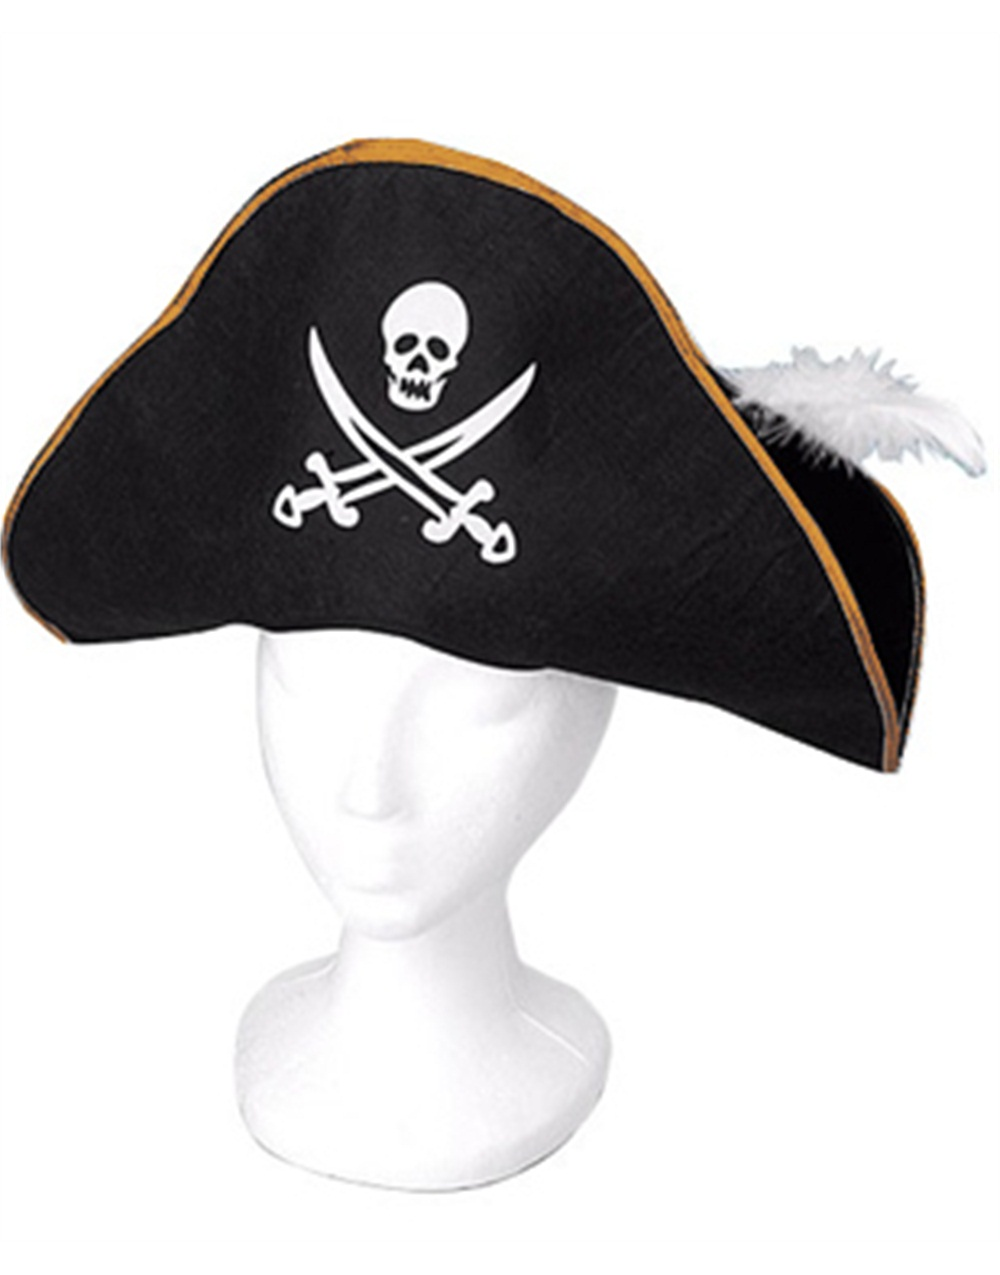 Adult pirate hat anime image